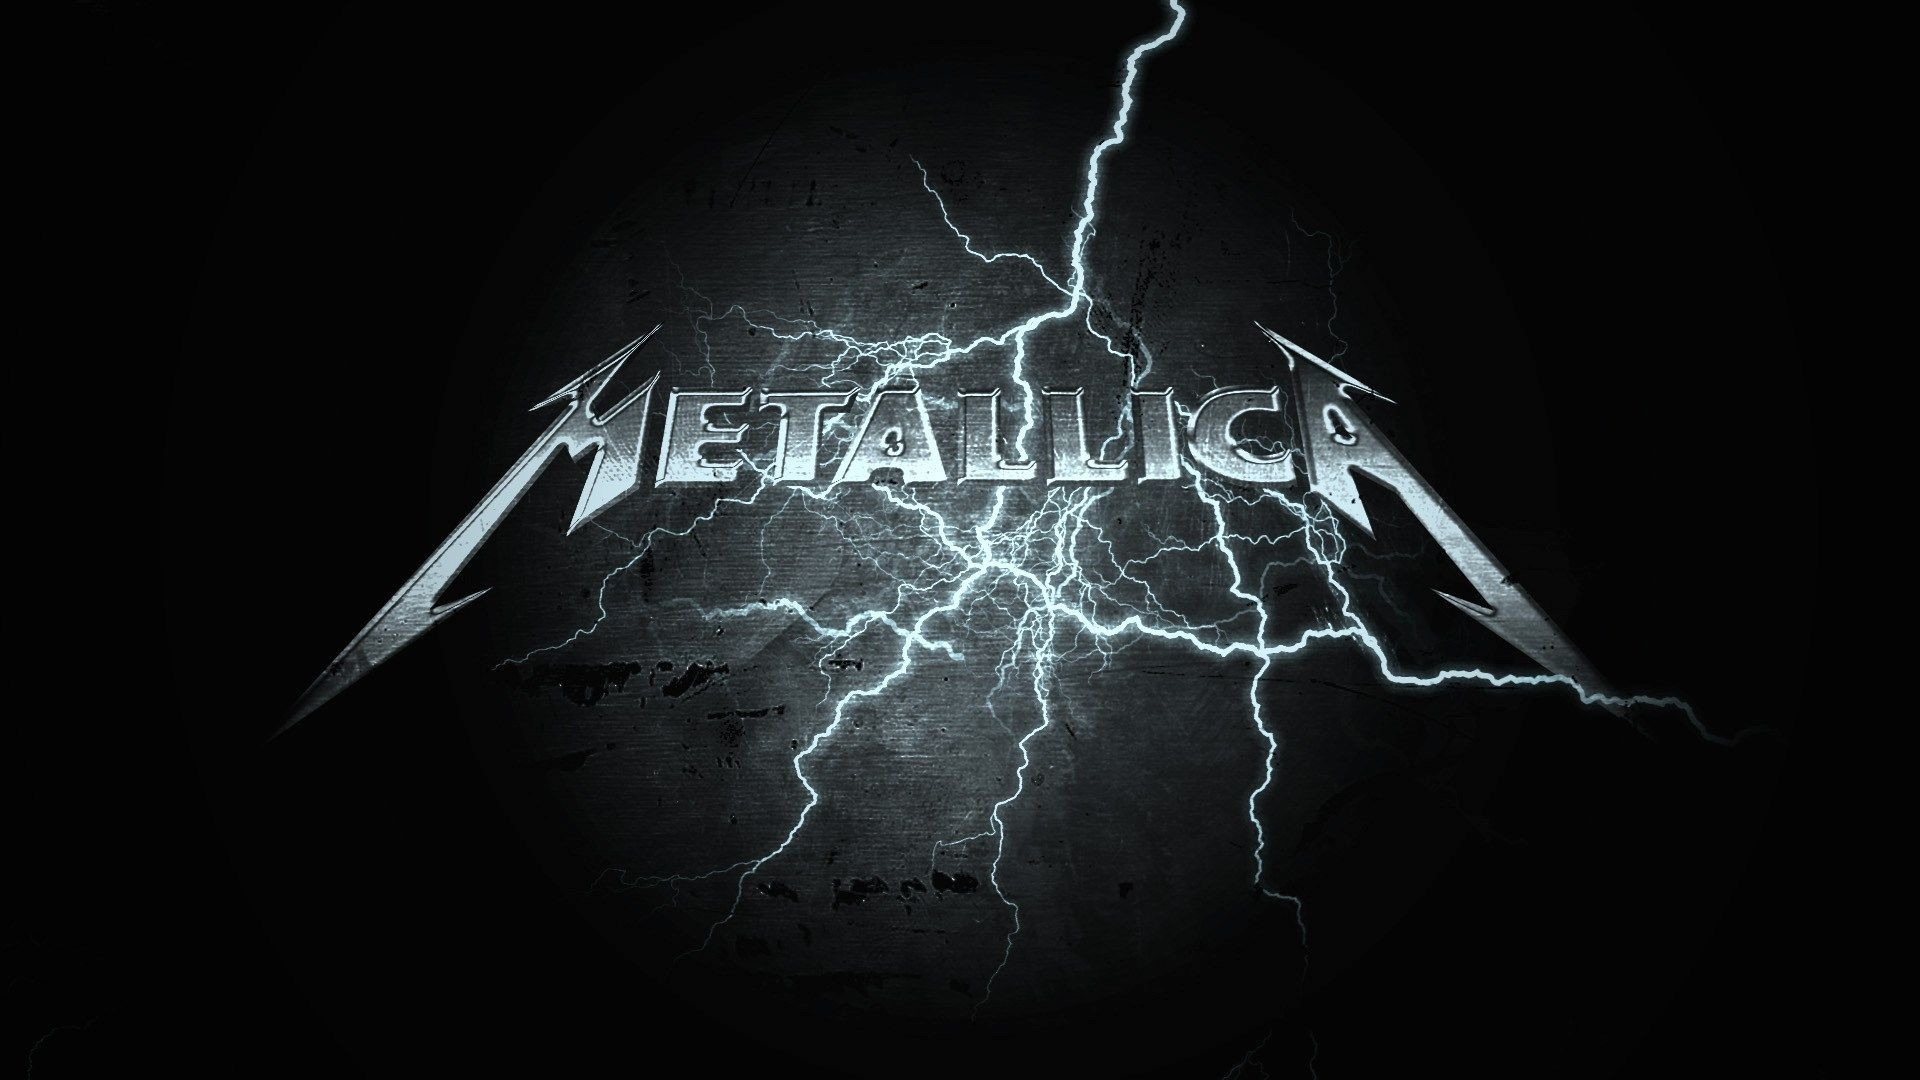 metallica logo wallpapers 61 background pictures. Black Bedroom Furniture Sets. Home Design Ideas